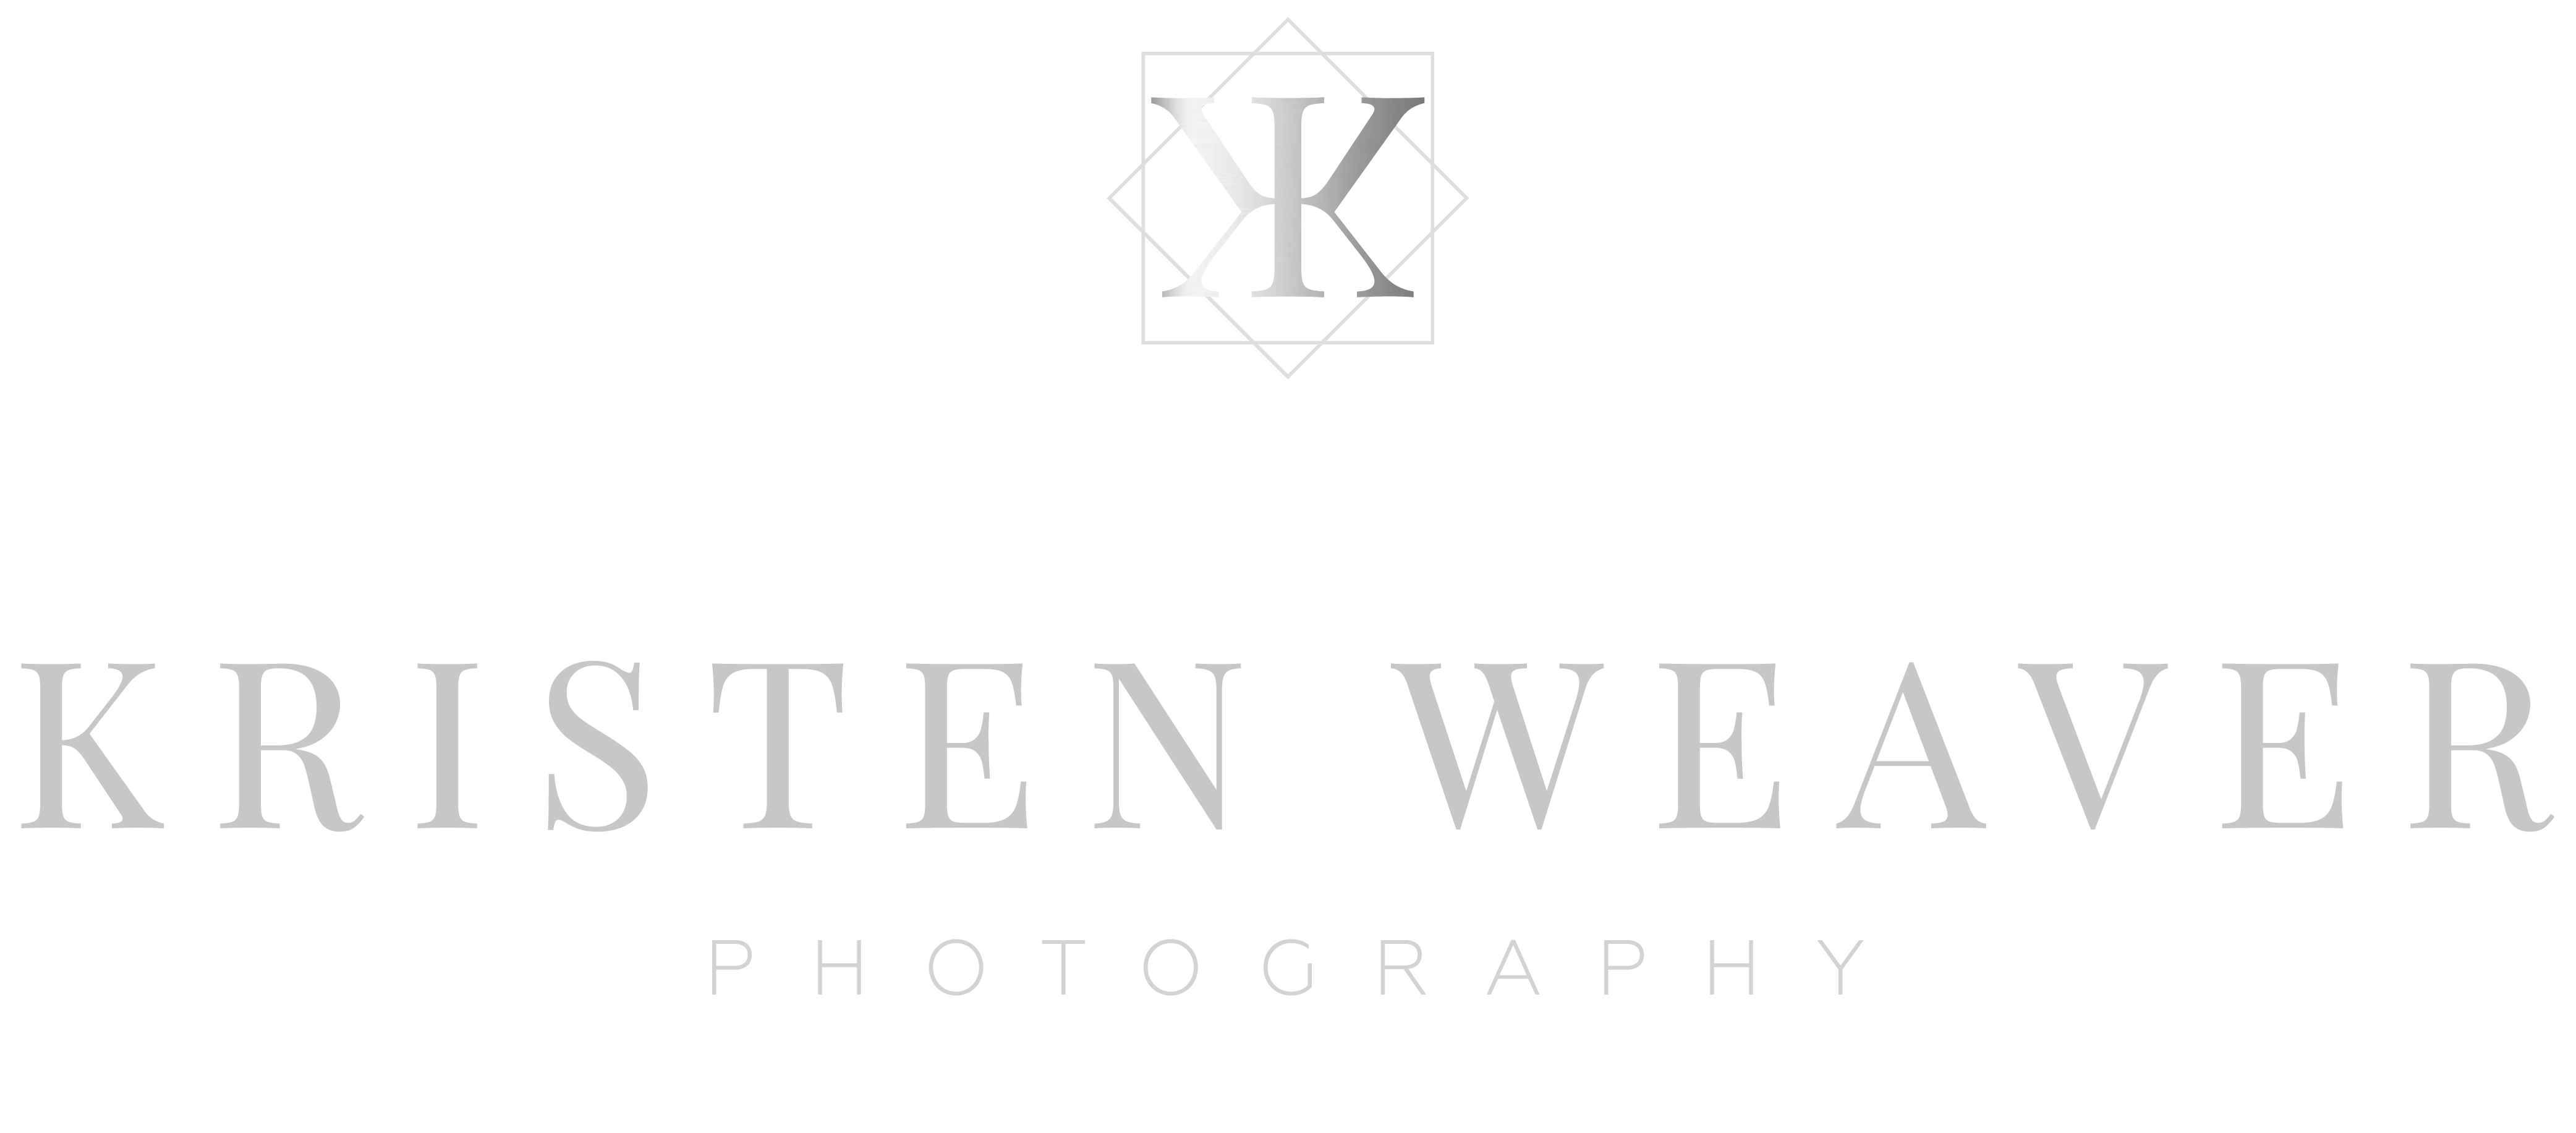 Orlando Wedding Photographer Kristen Weaver Photography